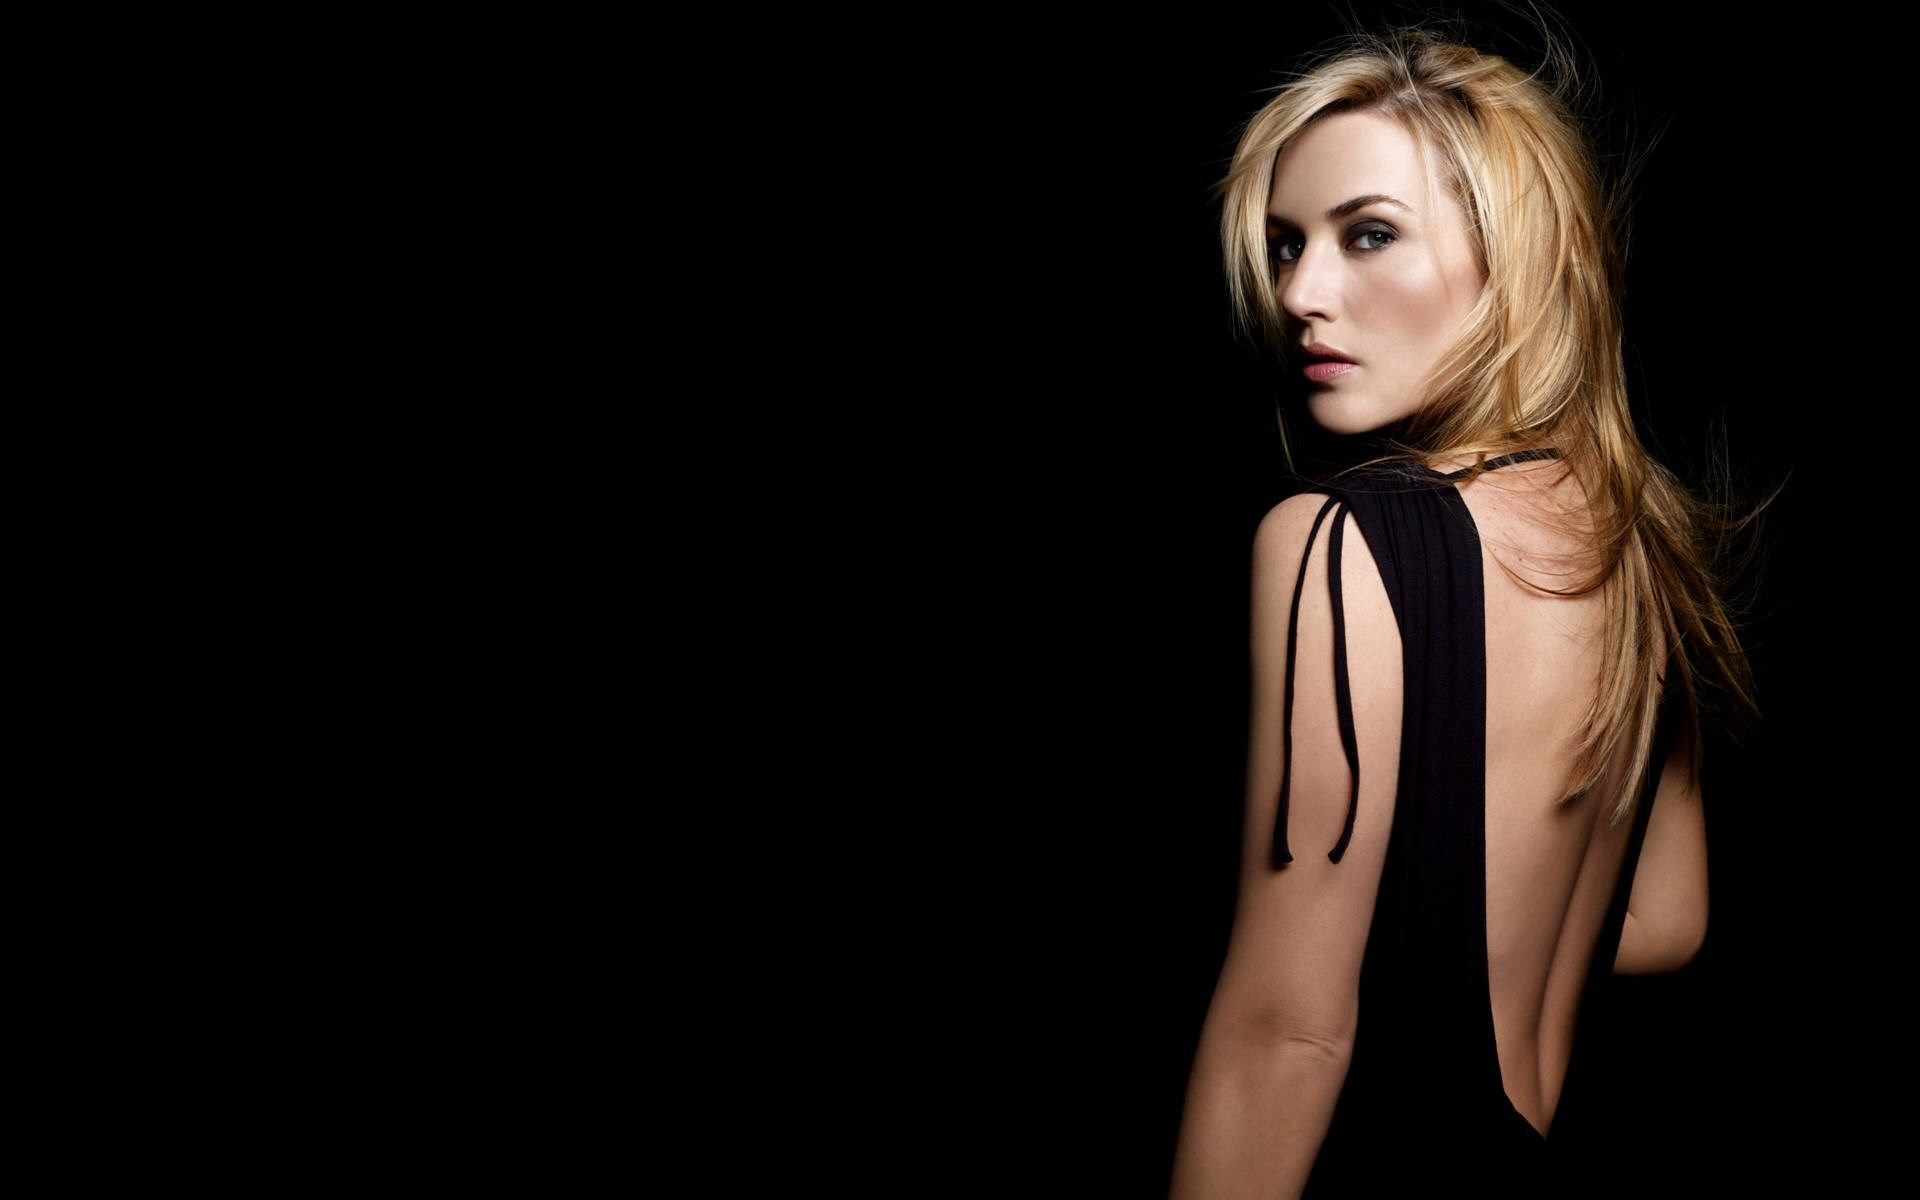 1470766 Kate Winslet Category Hd Widescreen Wallpapers Kate